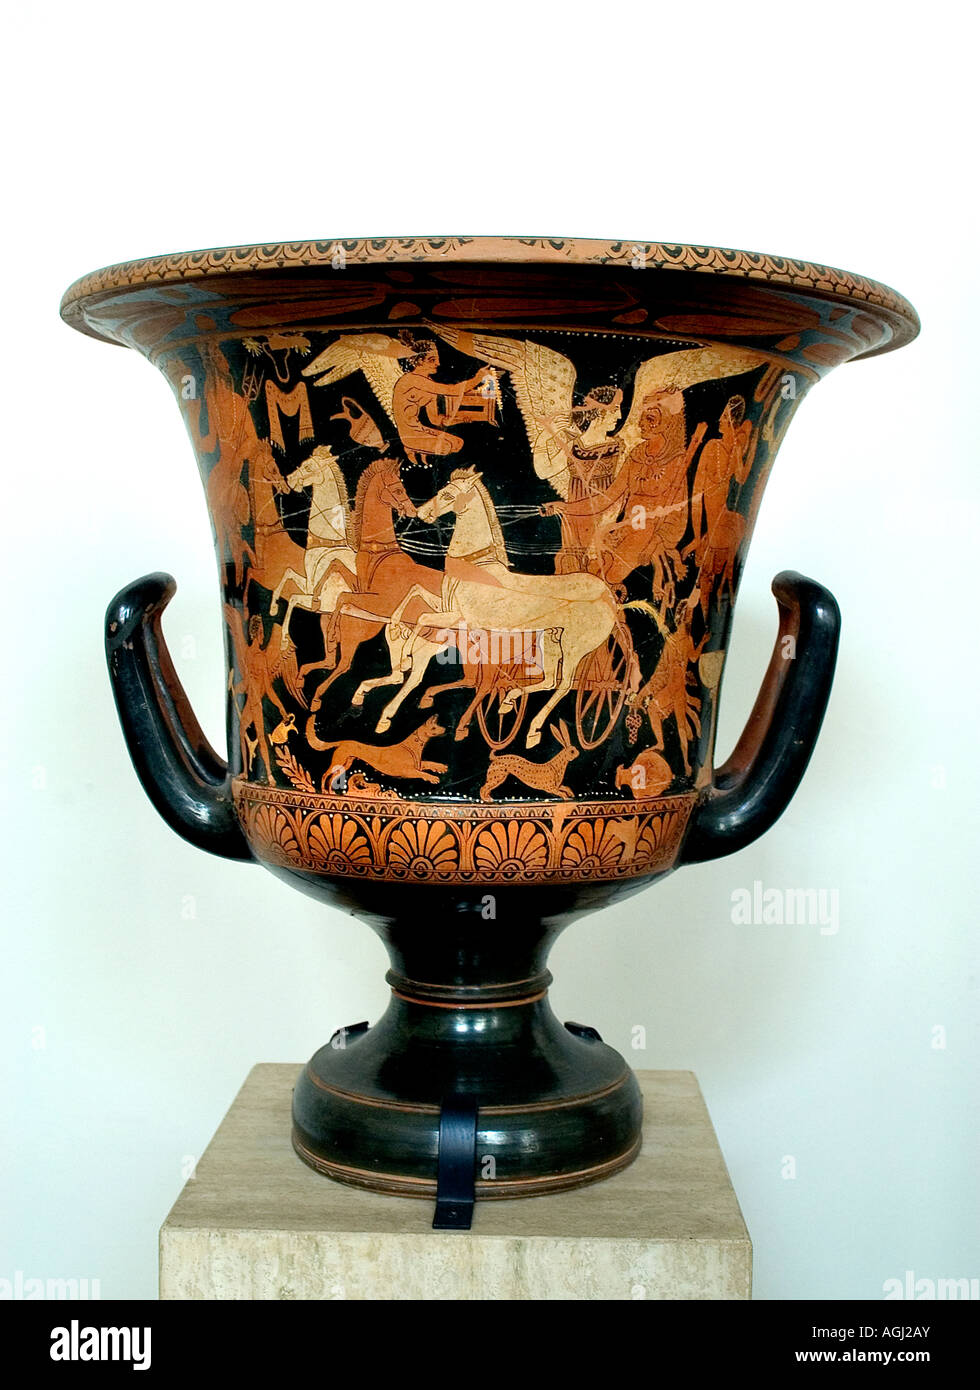 South Italian Vases with Mythological Depictions Souther Italy 4th cent BC - Stock Image